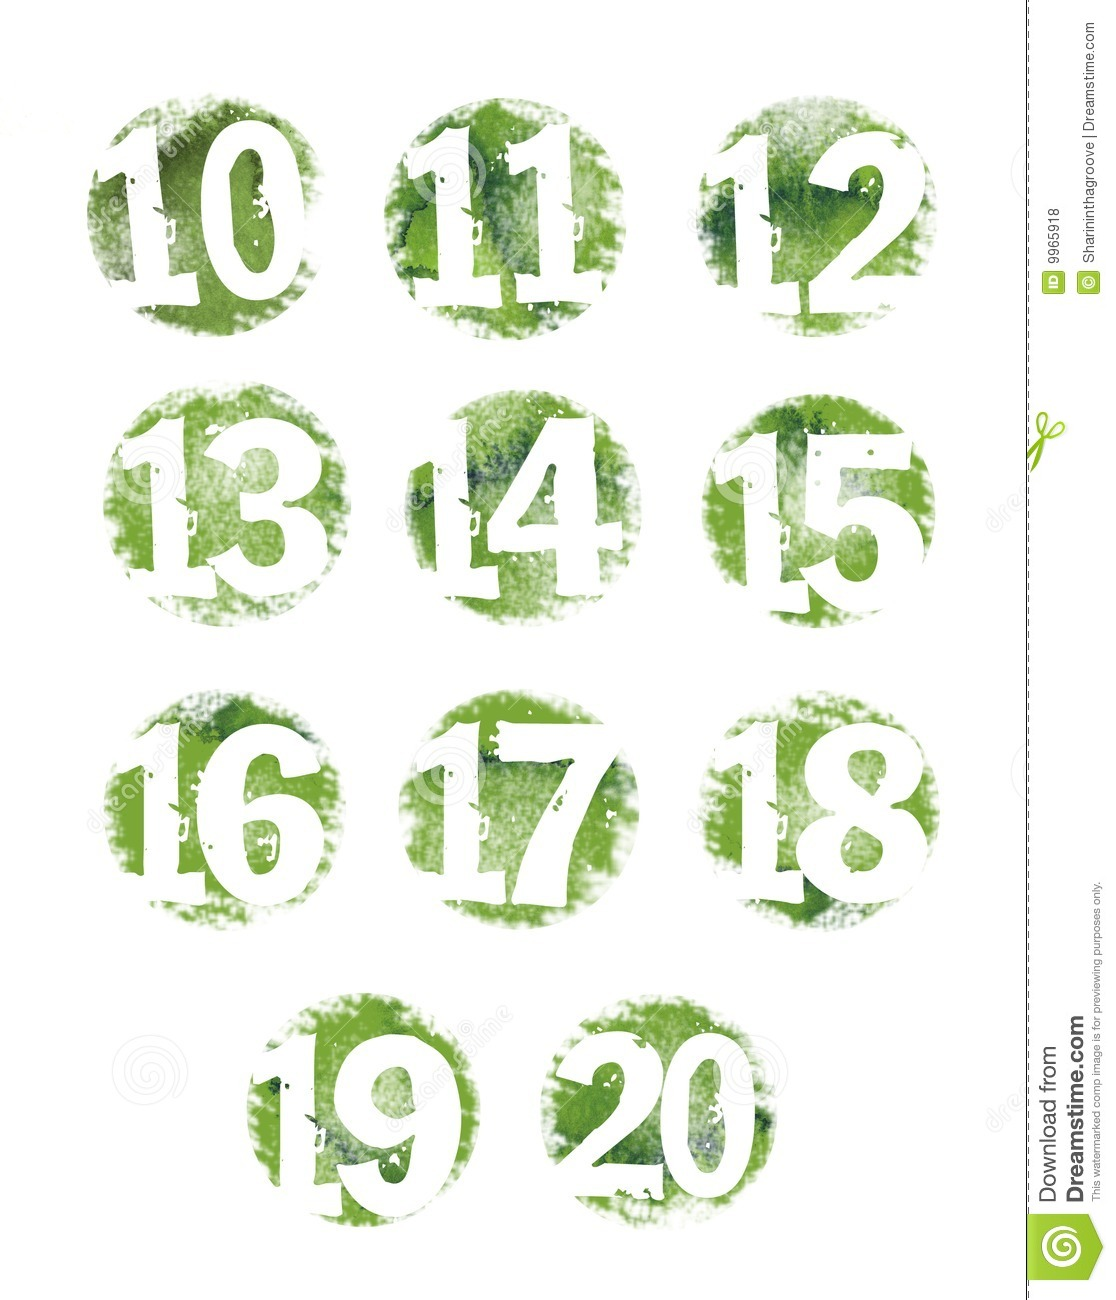 Green Grunge Textured Number Set 10 20 Royalty Free Stock